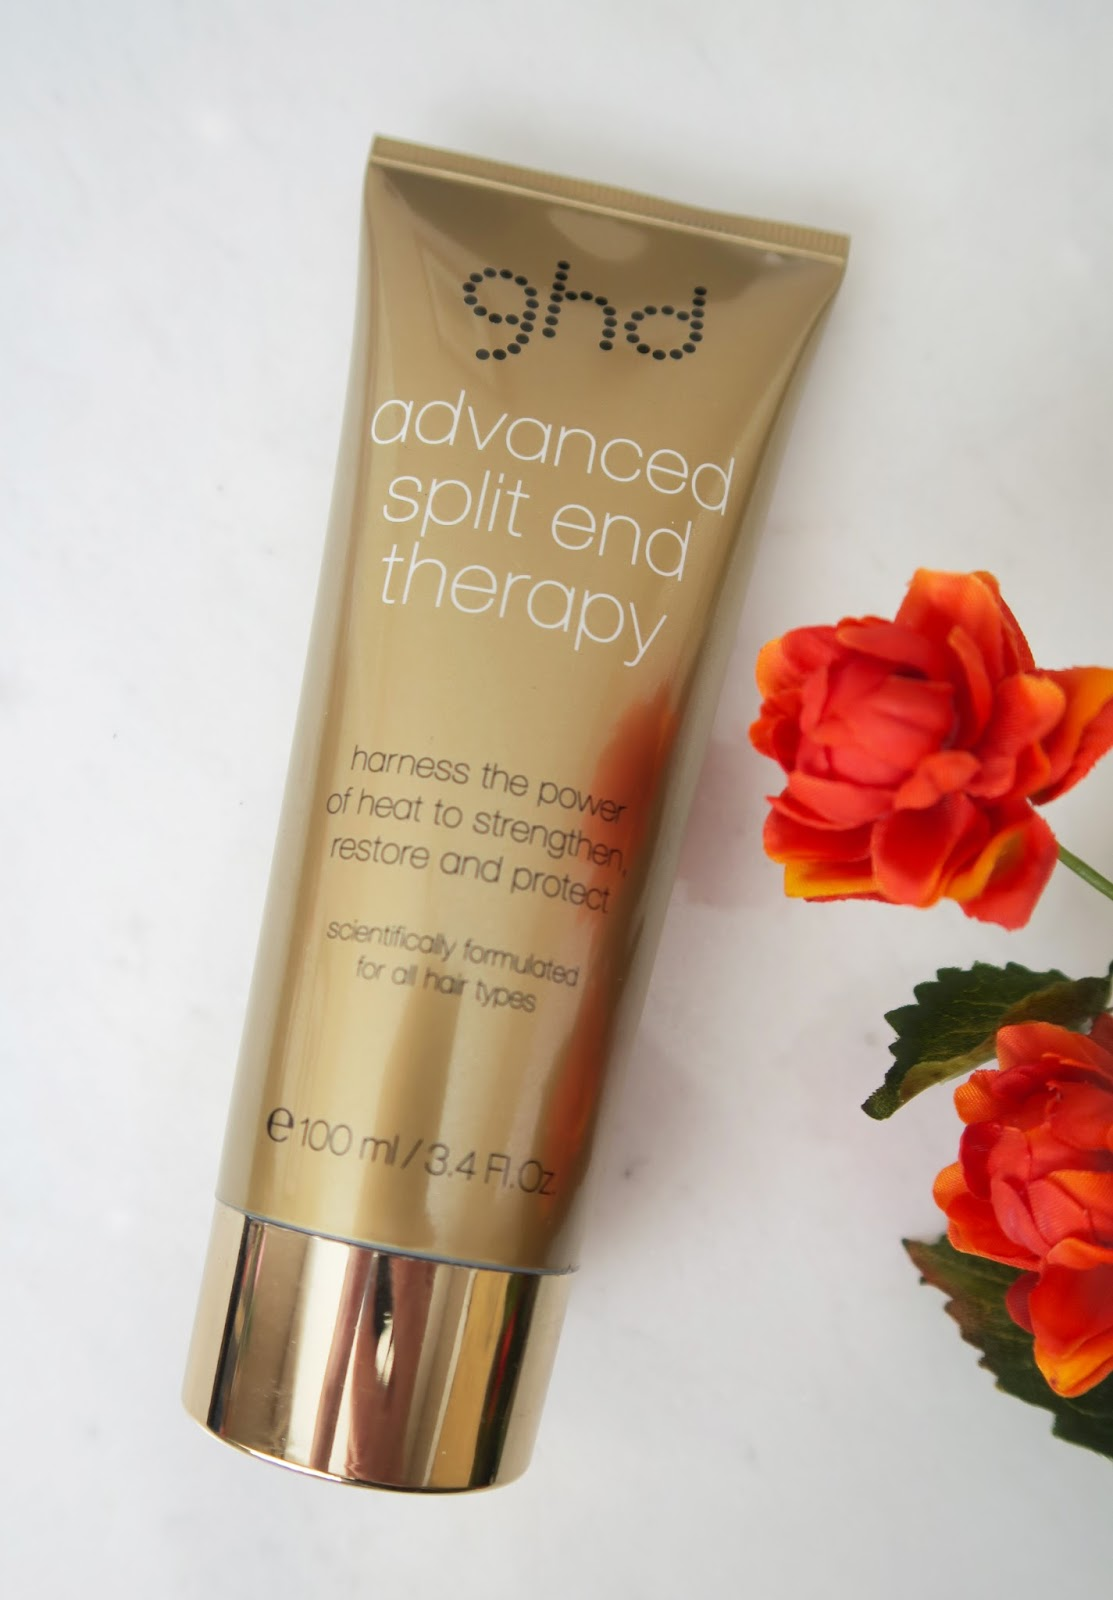 GHD Advanced Split End Therapy   Elle and Mimi